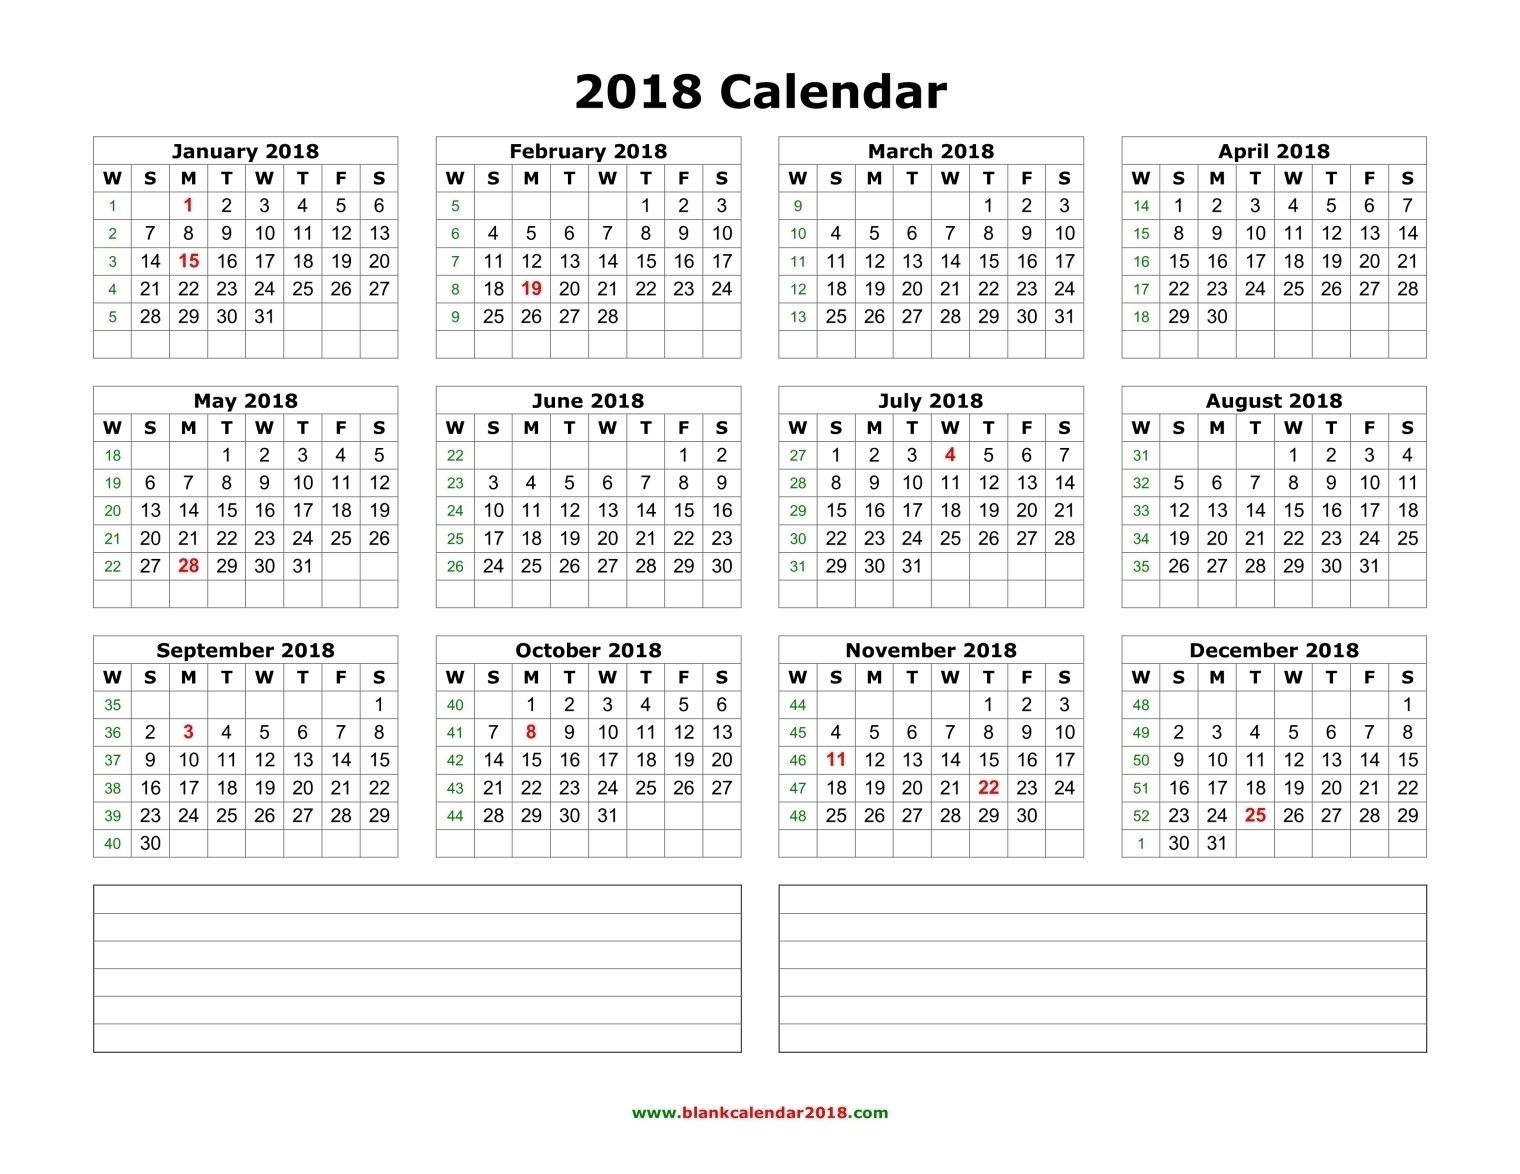 2020 Calendar Template Calendarlabs.com